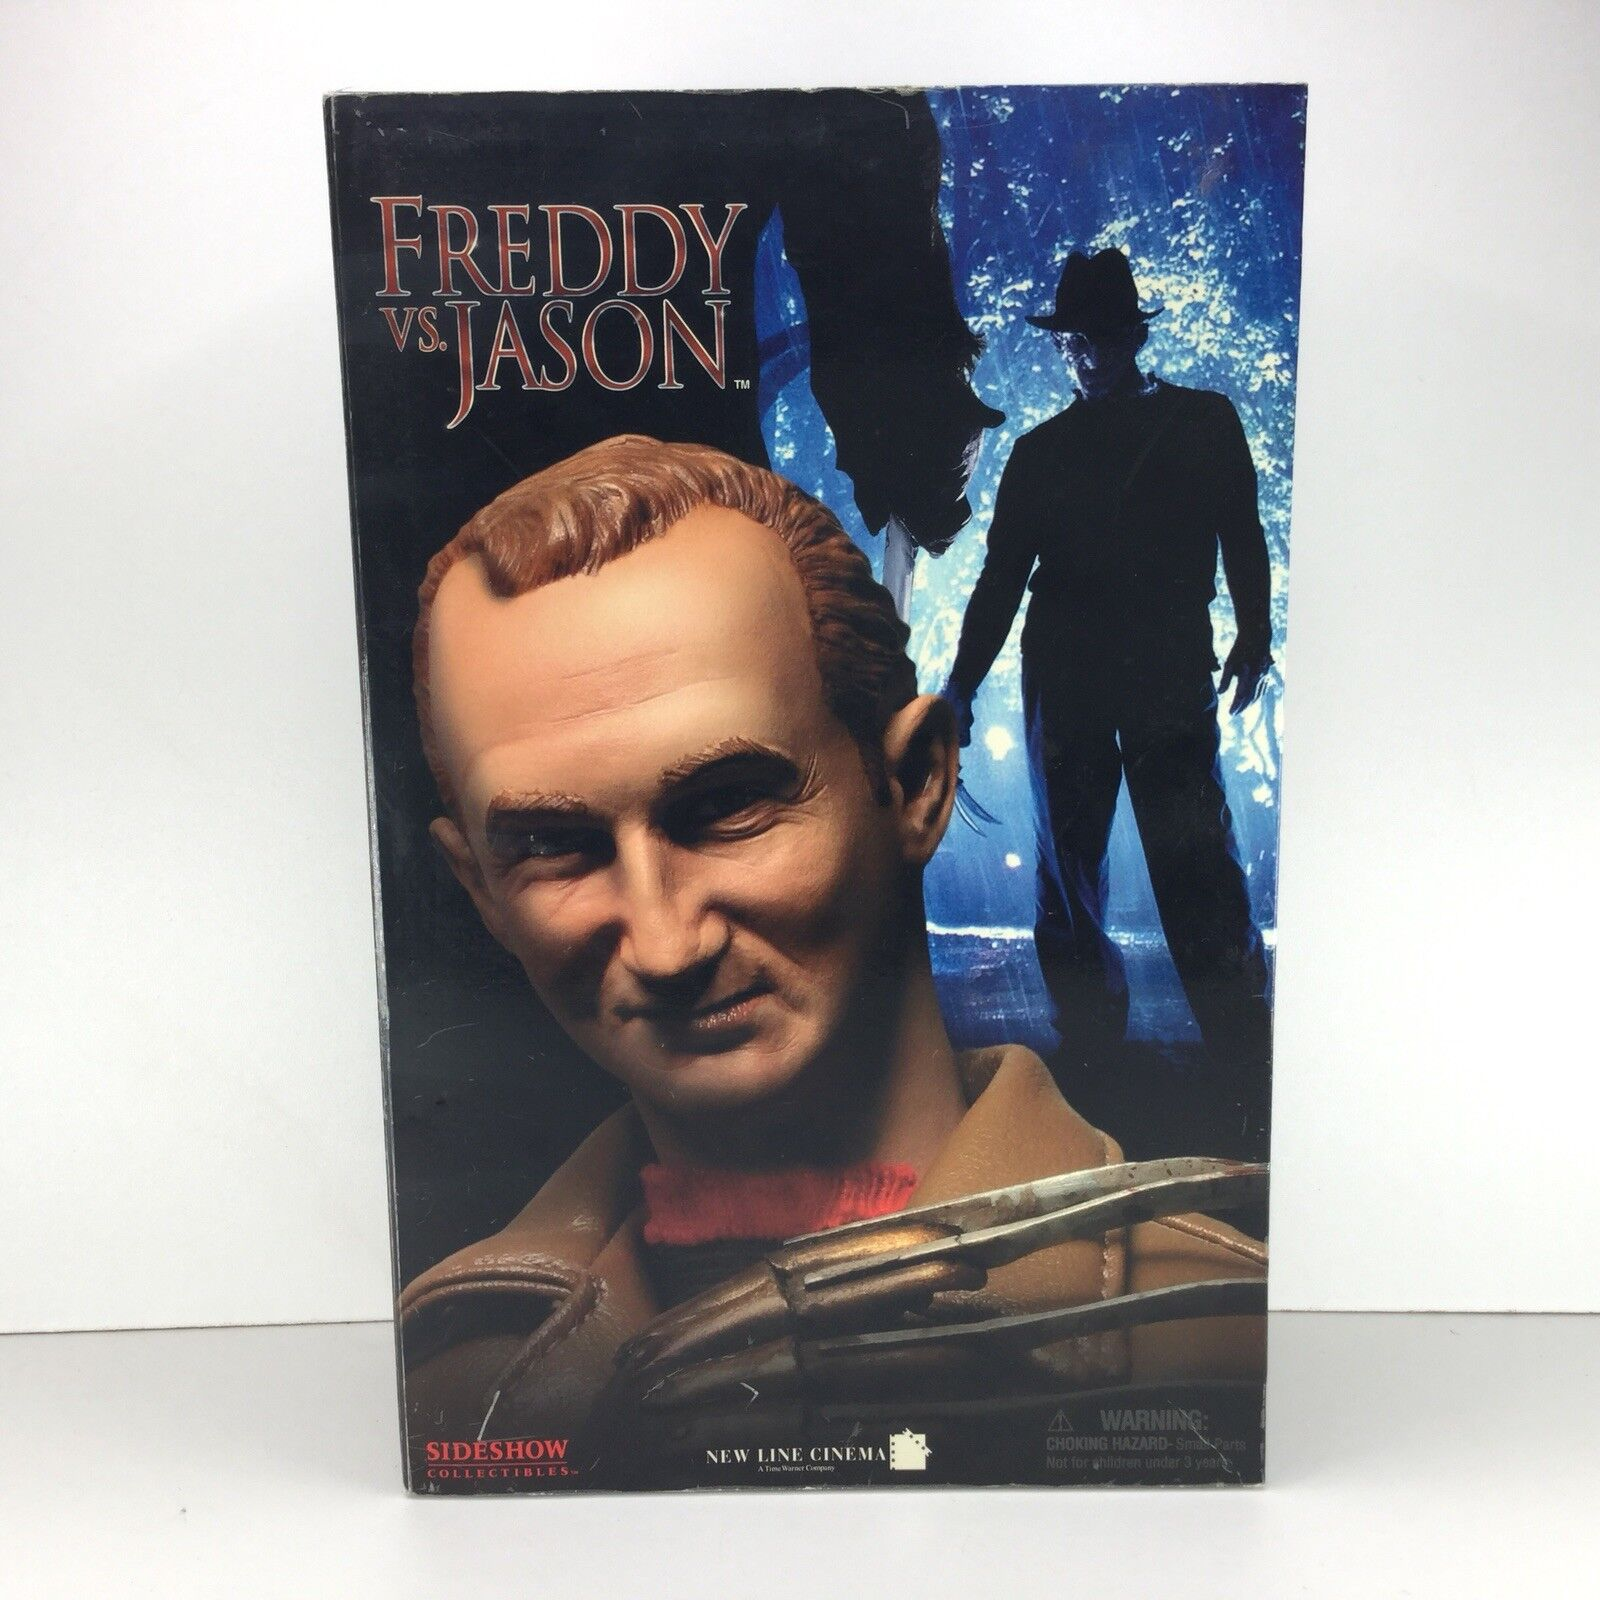 Sideshow Frotdy Vs Jason Frotdy Krueger Action Figure CIB Horror Wes Craven